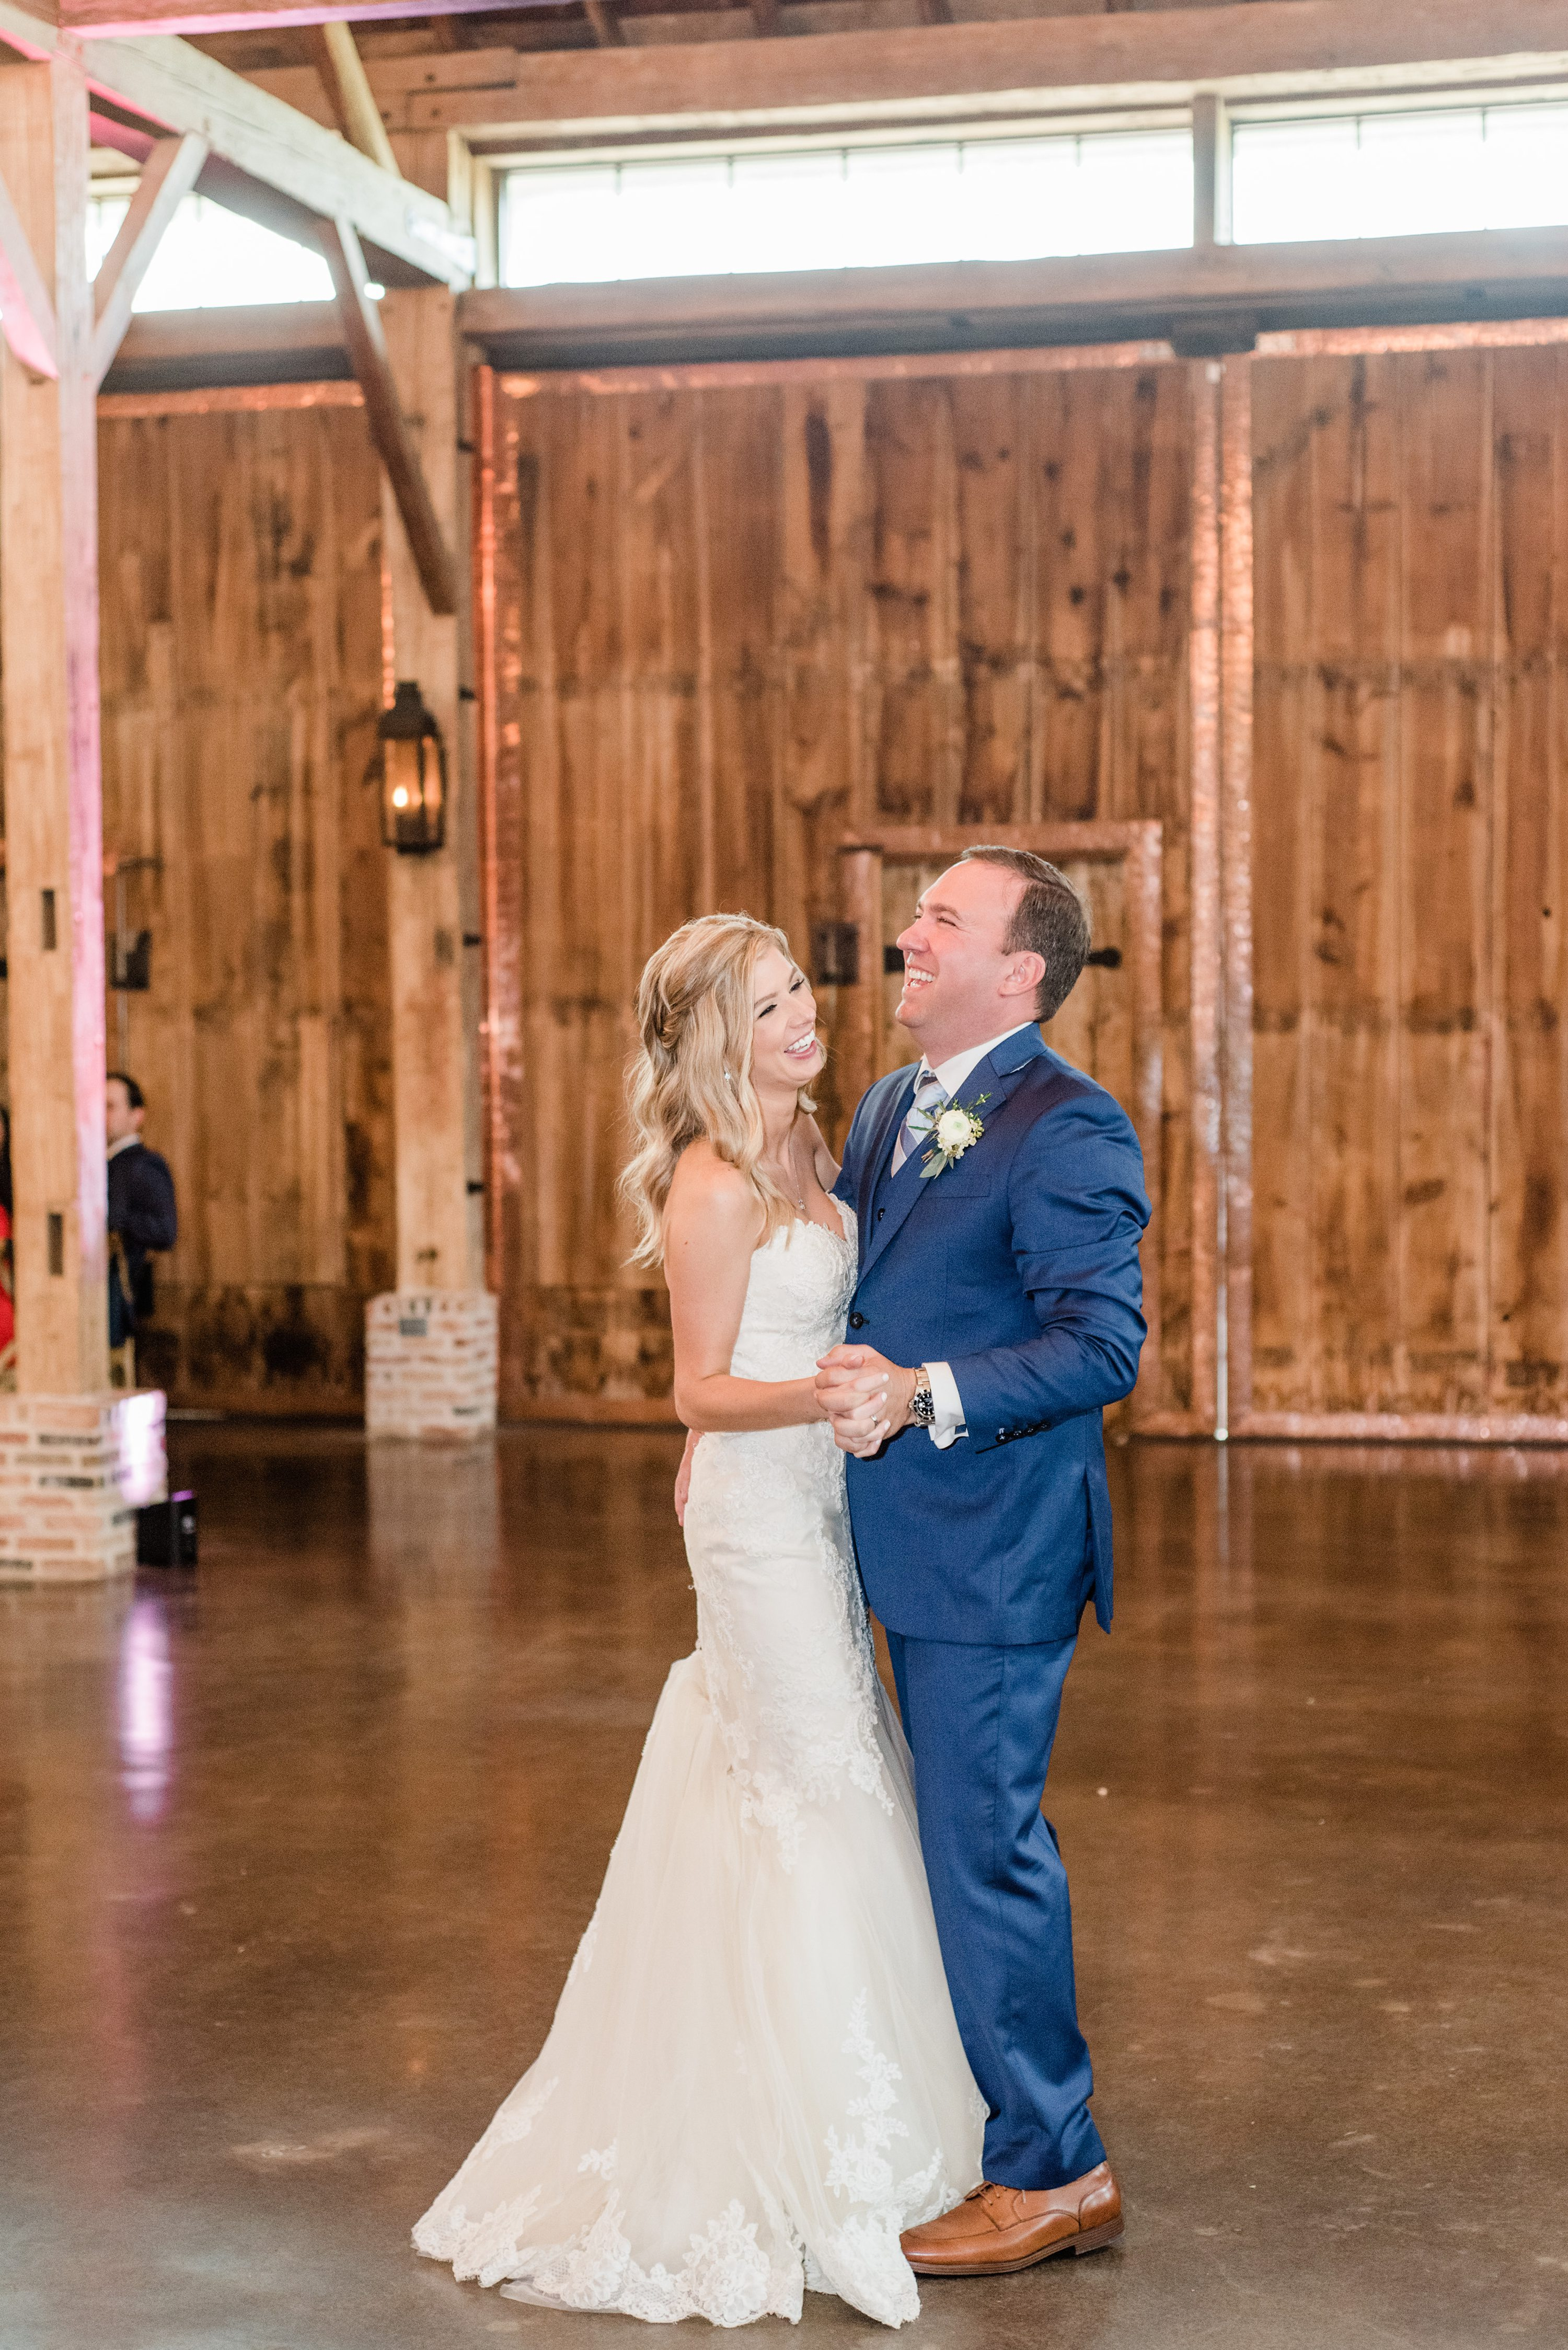 TX, while the groomsmen wore custom tailored blue suits. Their romantic ceremony was so full of emotion